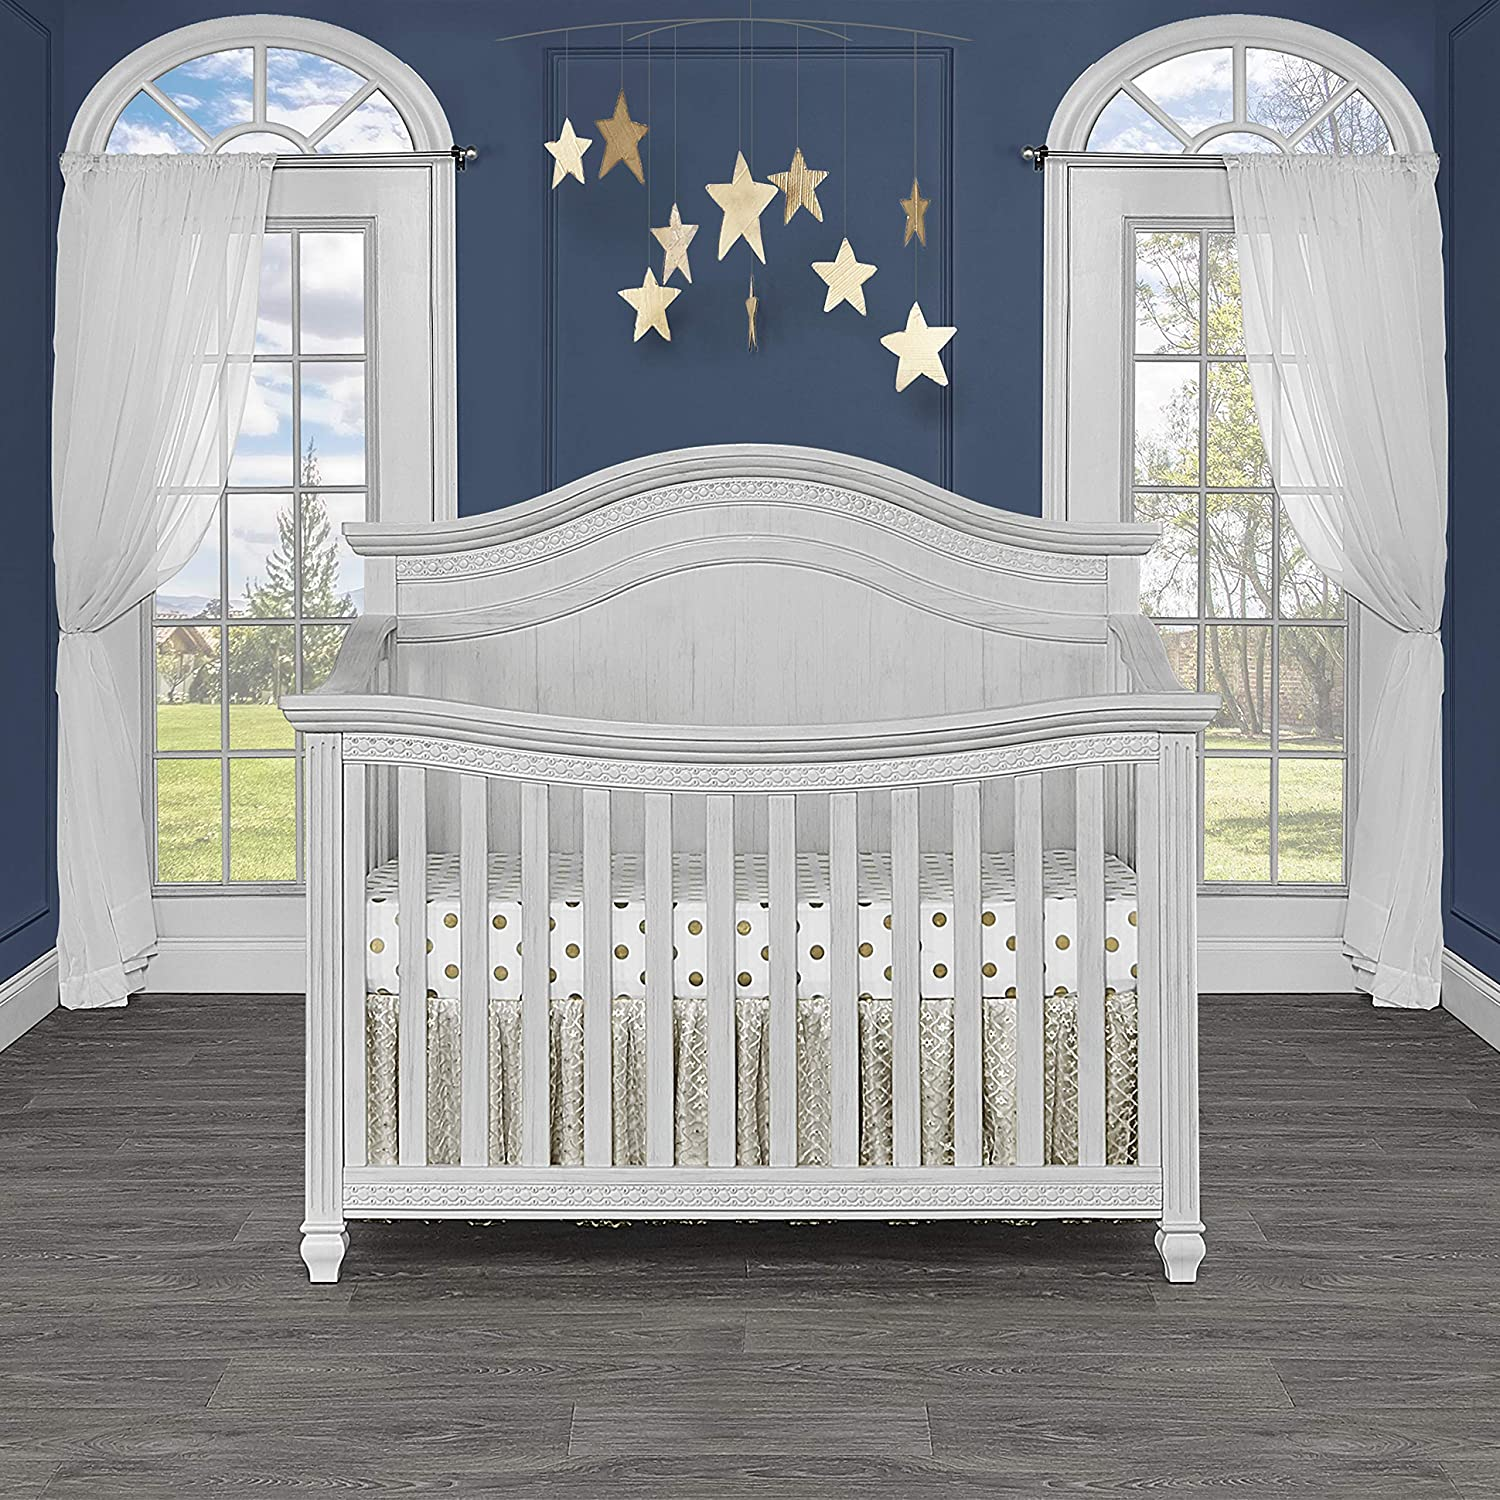 Evolur Madison 5 in 1 Curved Top Antique Crib Ranking Challenge the lowest price TOP4 Grey Convertible